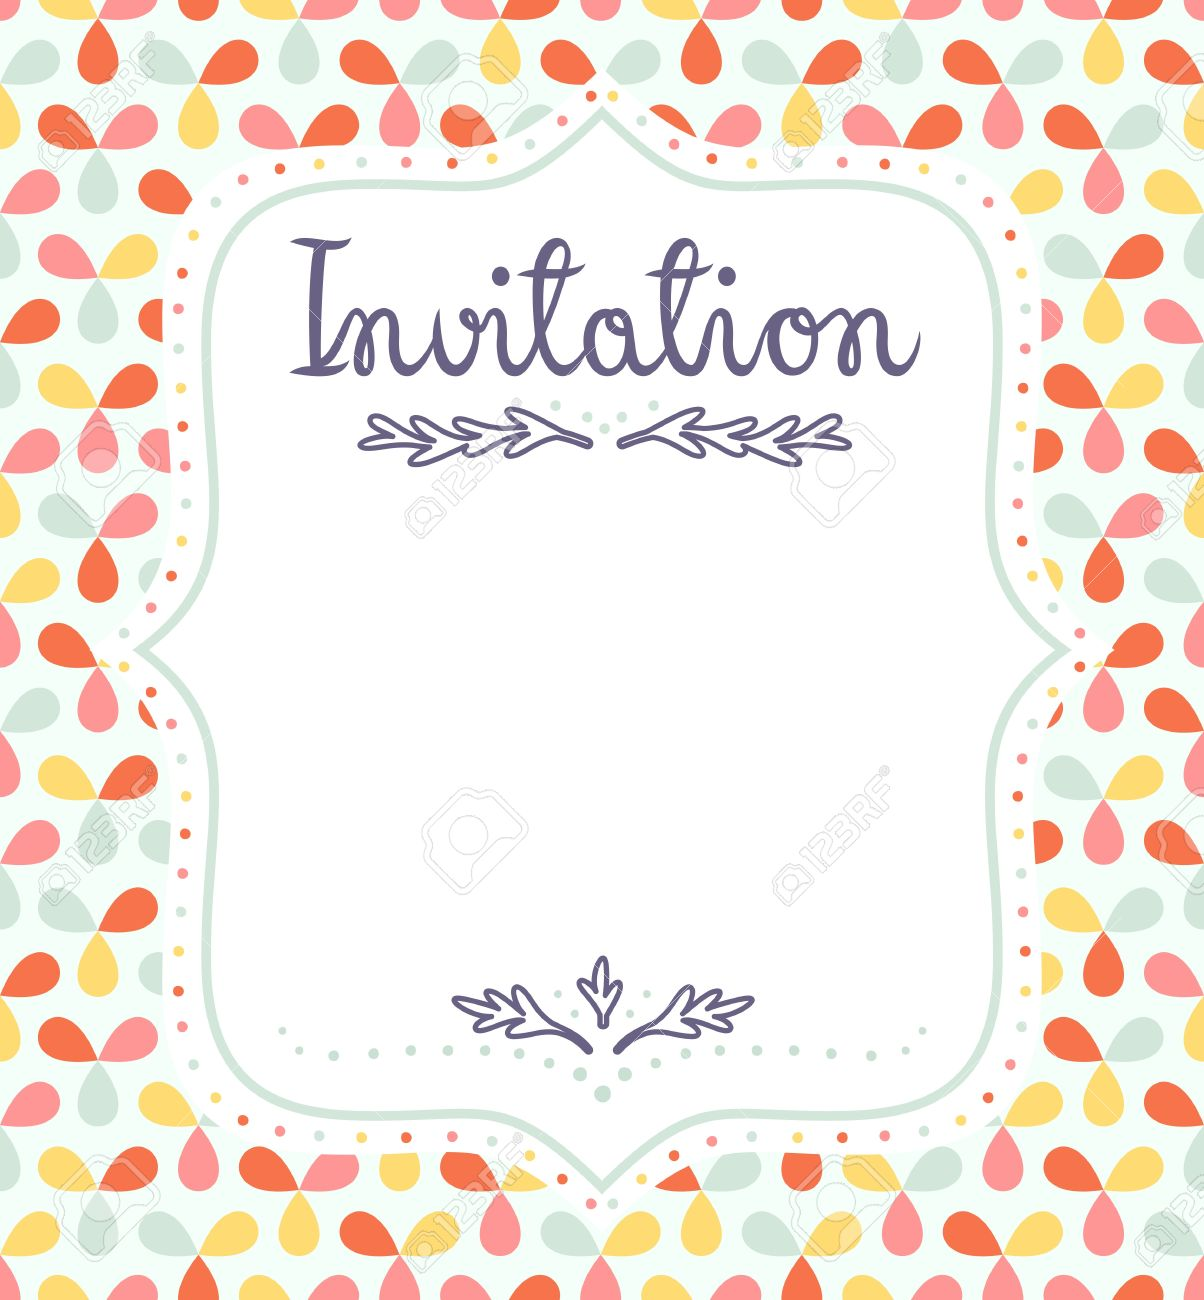 Cute Invitation Template For Festive Events Royalty Free Cliparts